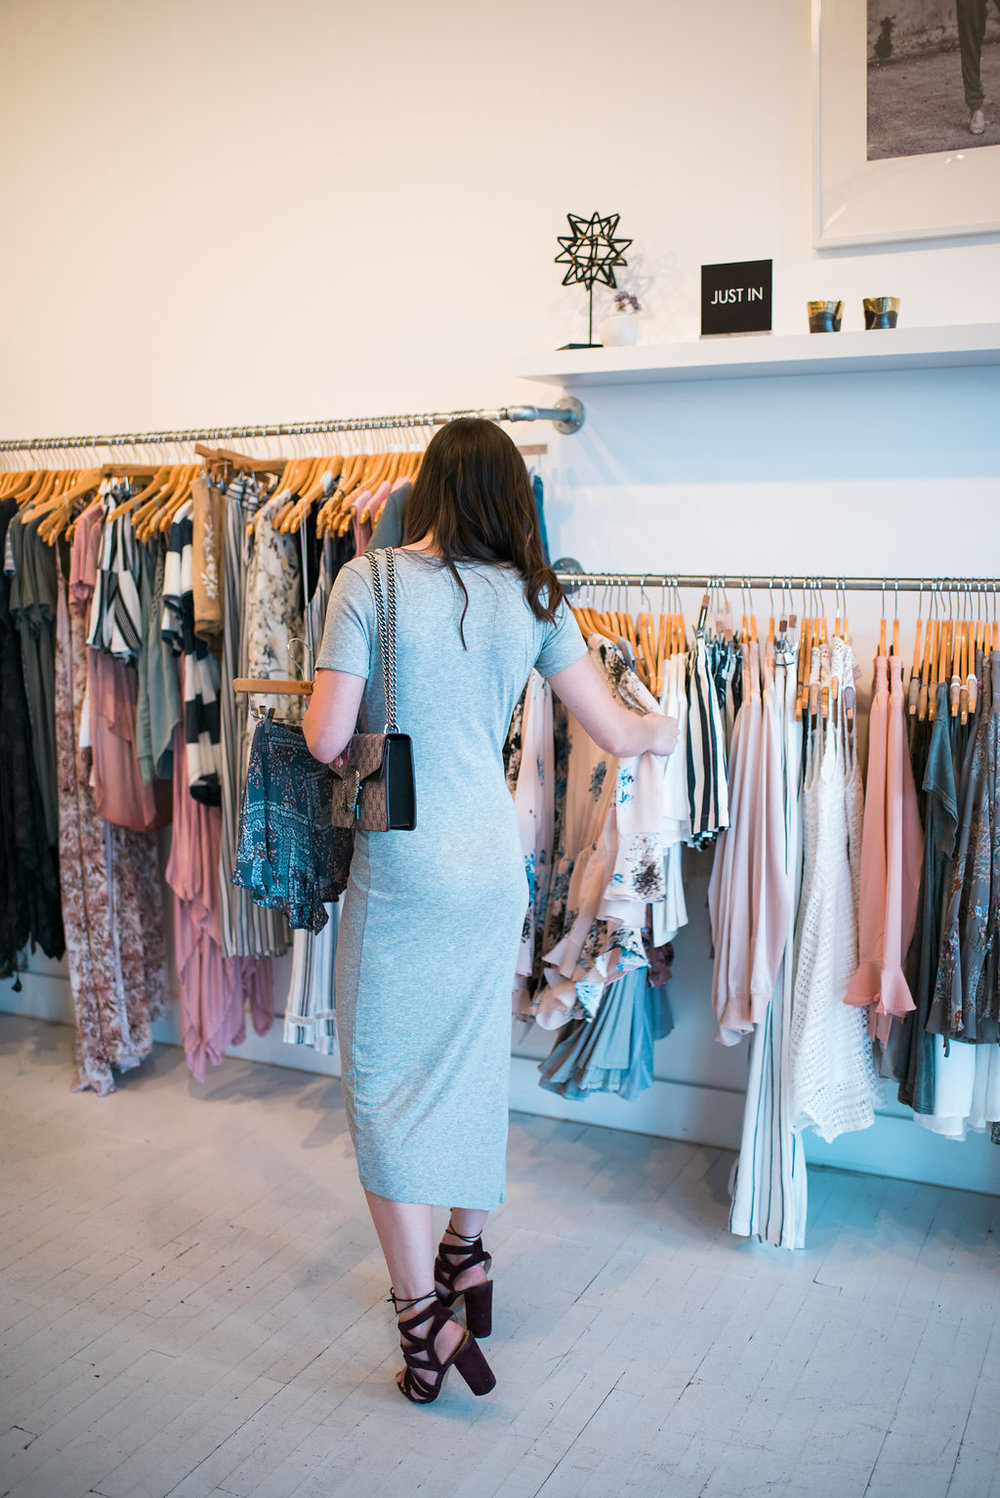 "<img src ="" the-importance-of-friendship-support-and-other-reflections.jpg"" alt ="" style-collective-blogger-meetup-denver-fabrik-boutique-the-importance-of-friendship-sam-edelman-yardley"">"